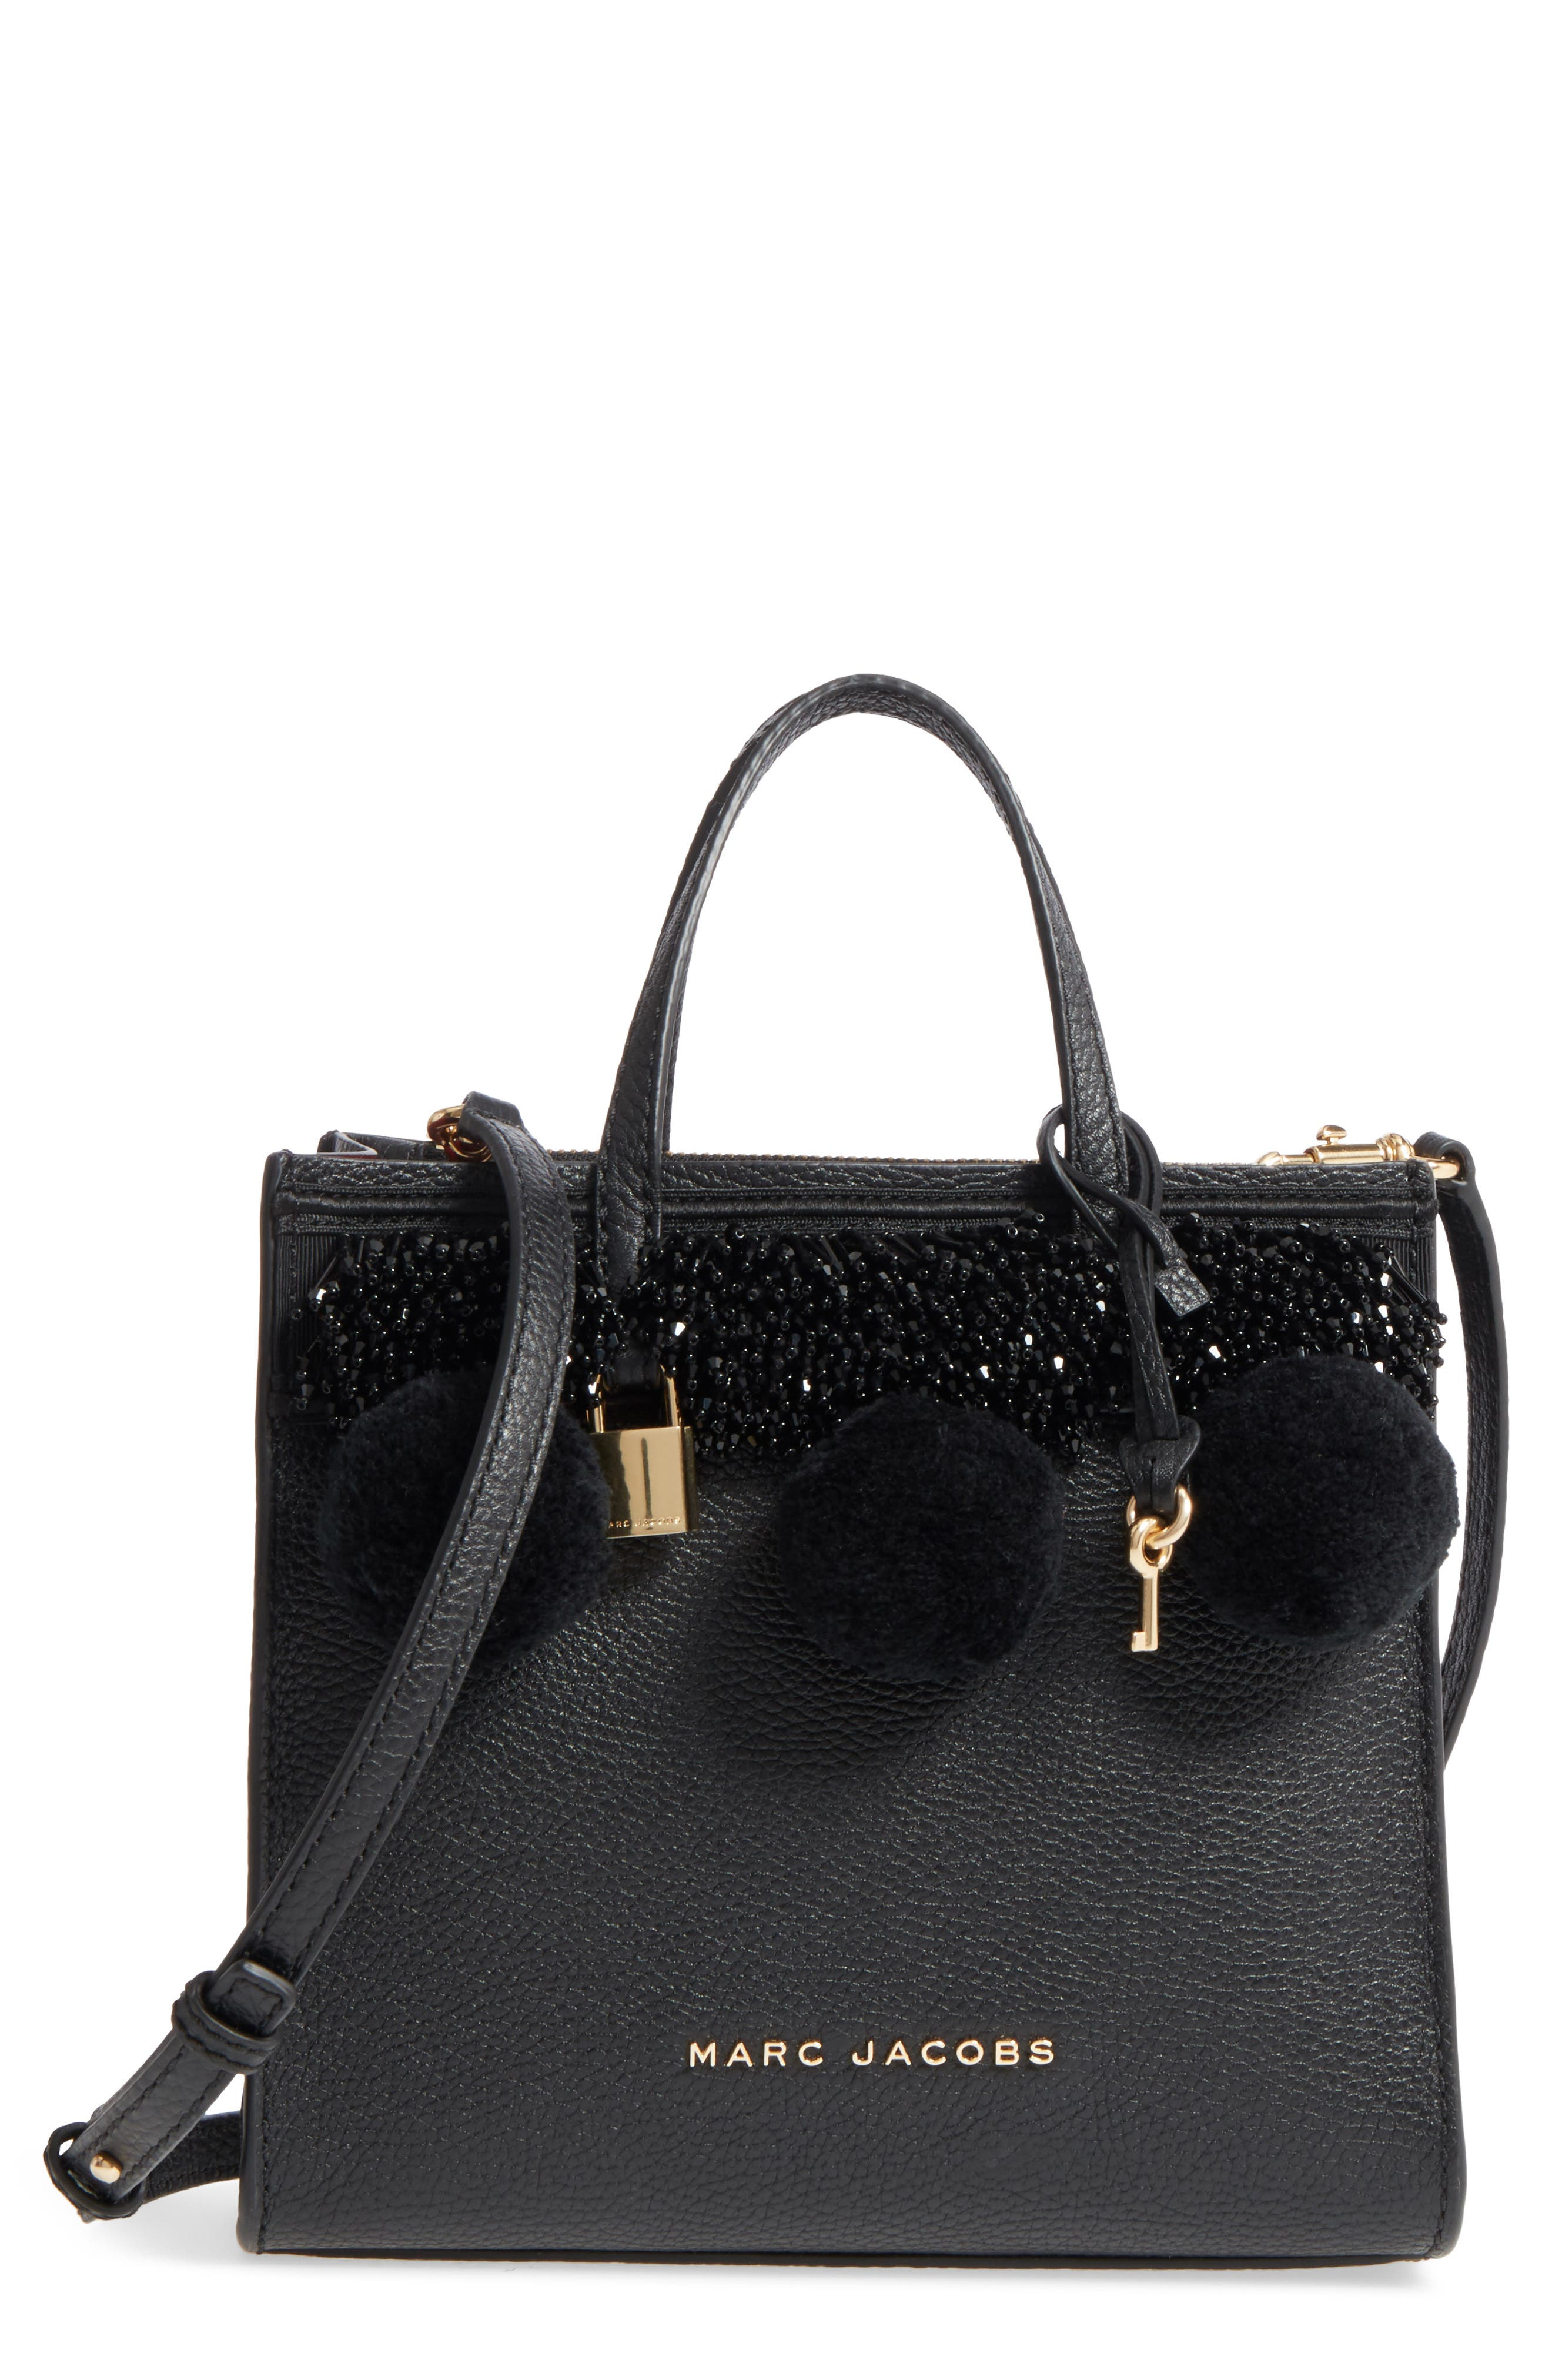 MARC JACOBS The Grind Mini Pompom Leather Tote